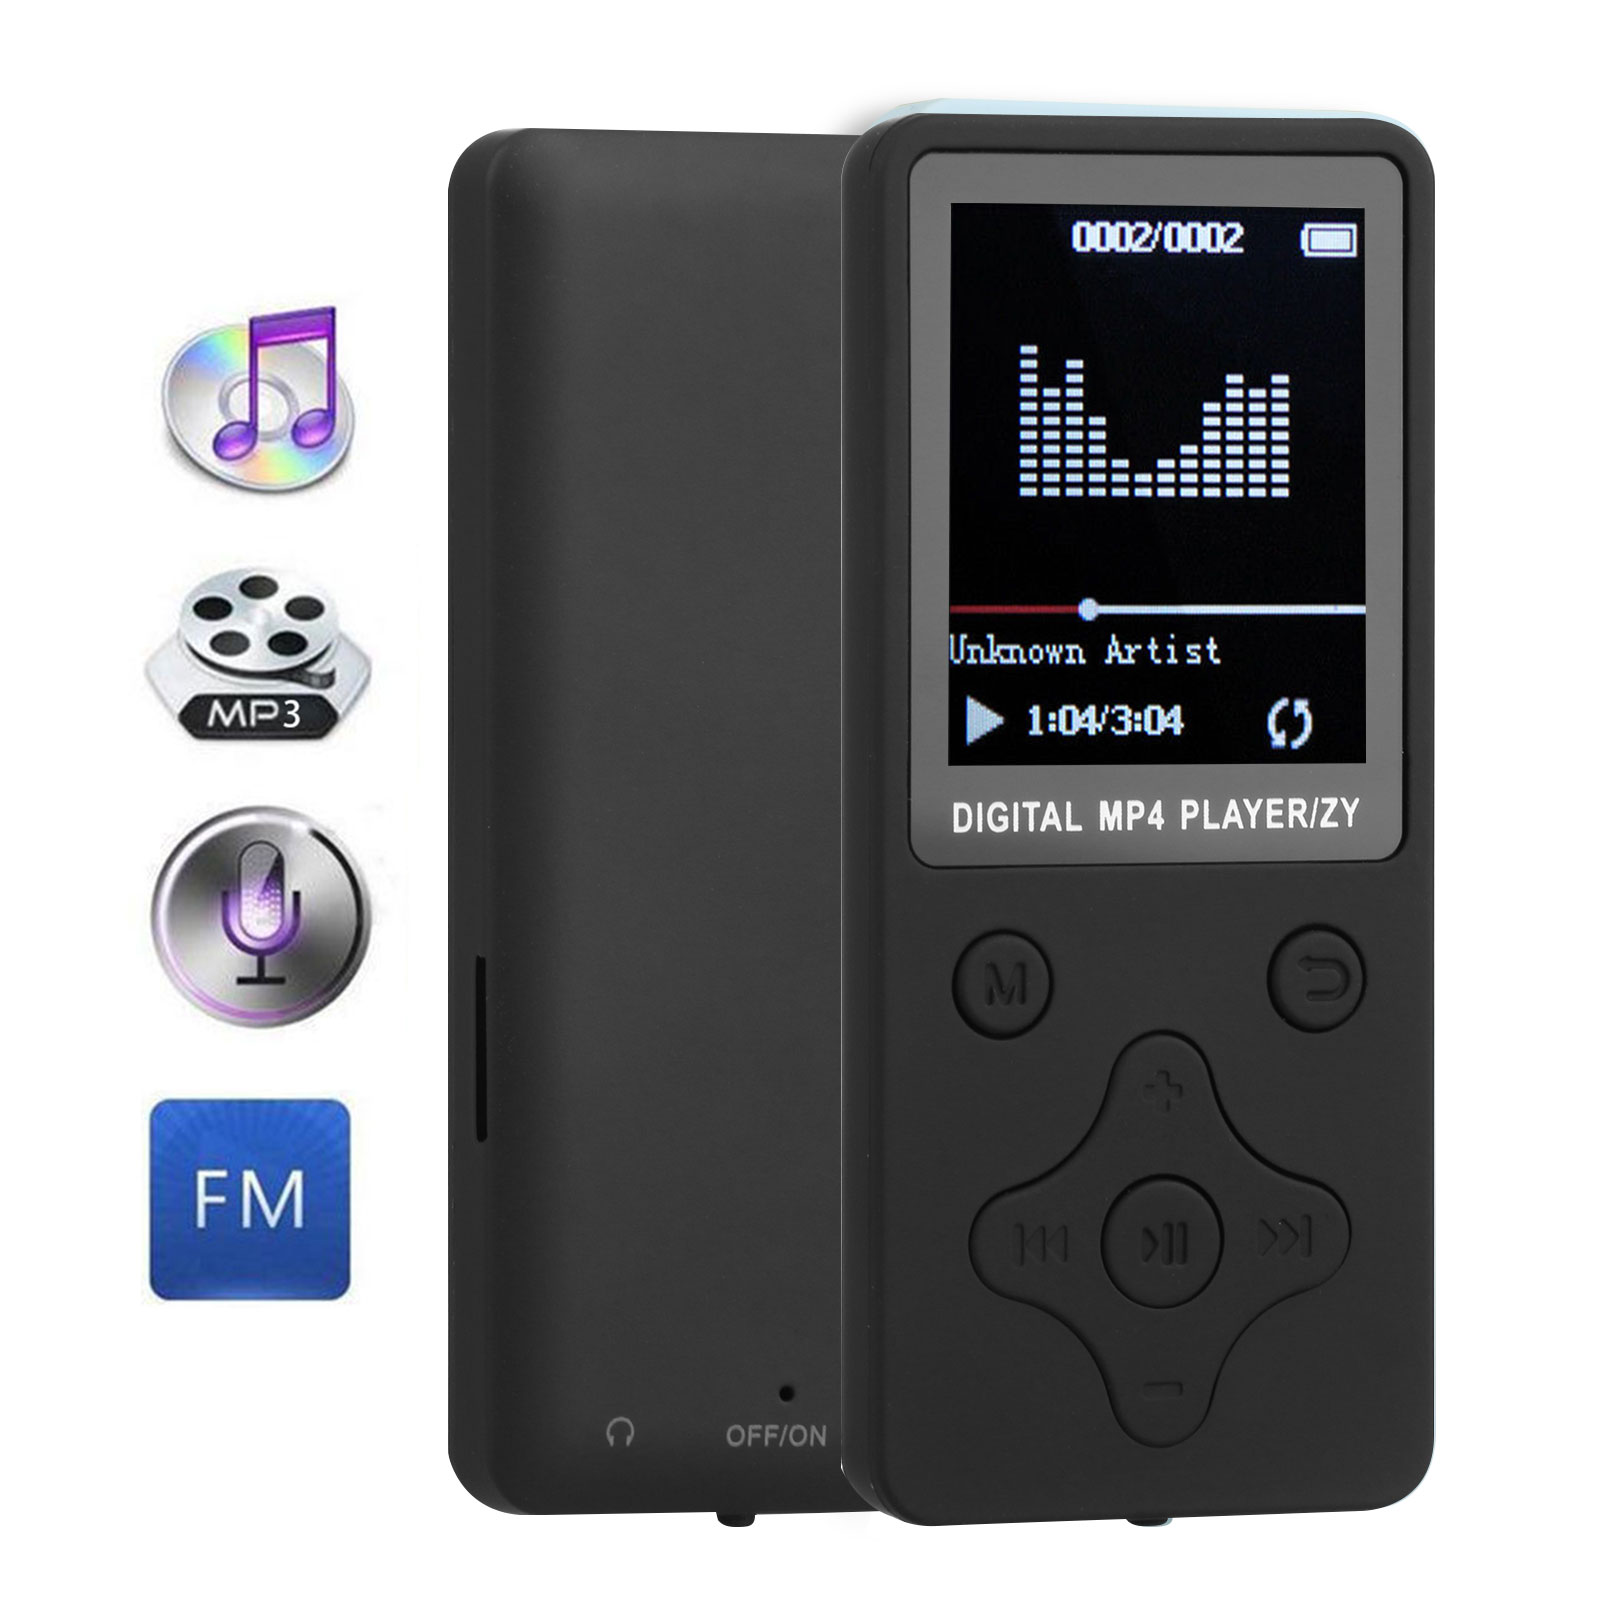 "MP3 Player, Portable Digital MP3 Music Player Lossless Sound with FM Radio, 1.8"" Screen, Micro SD Card Slot Max Support 32GB"